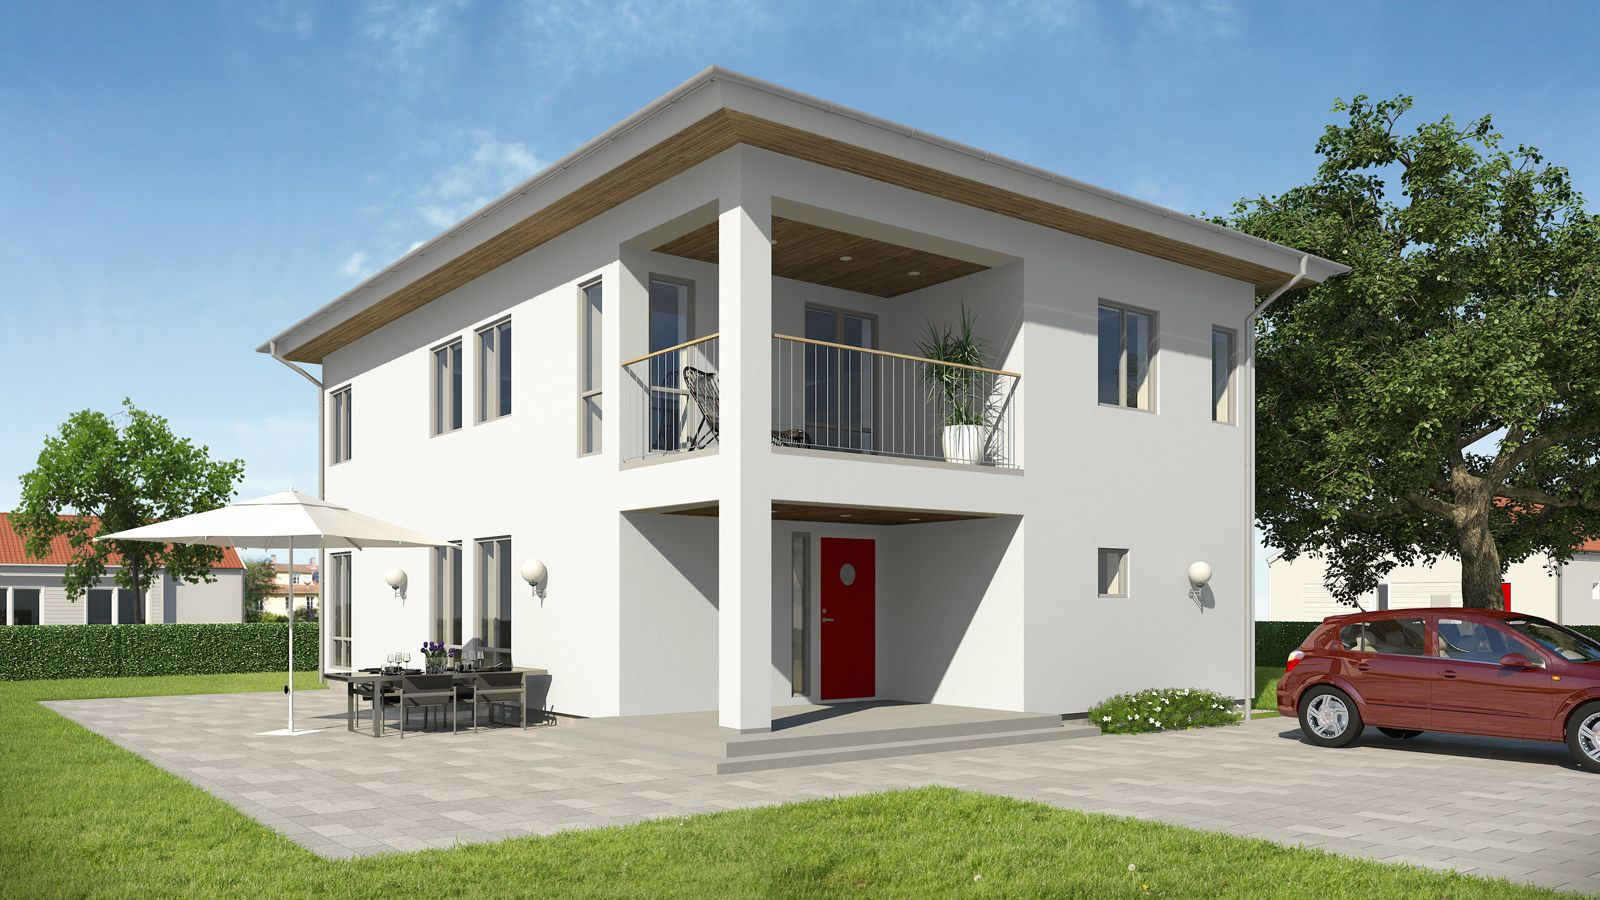 Borgholm | Self Build Kit Home from Sweden